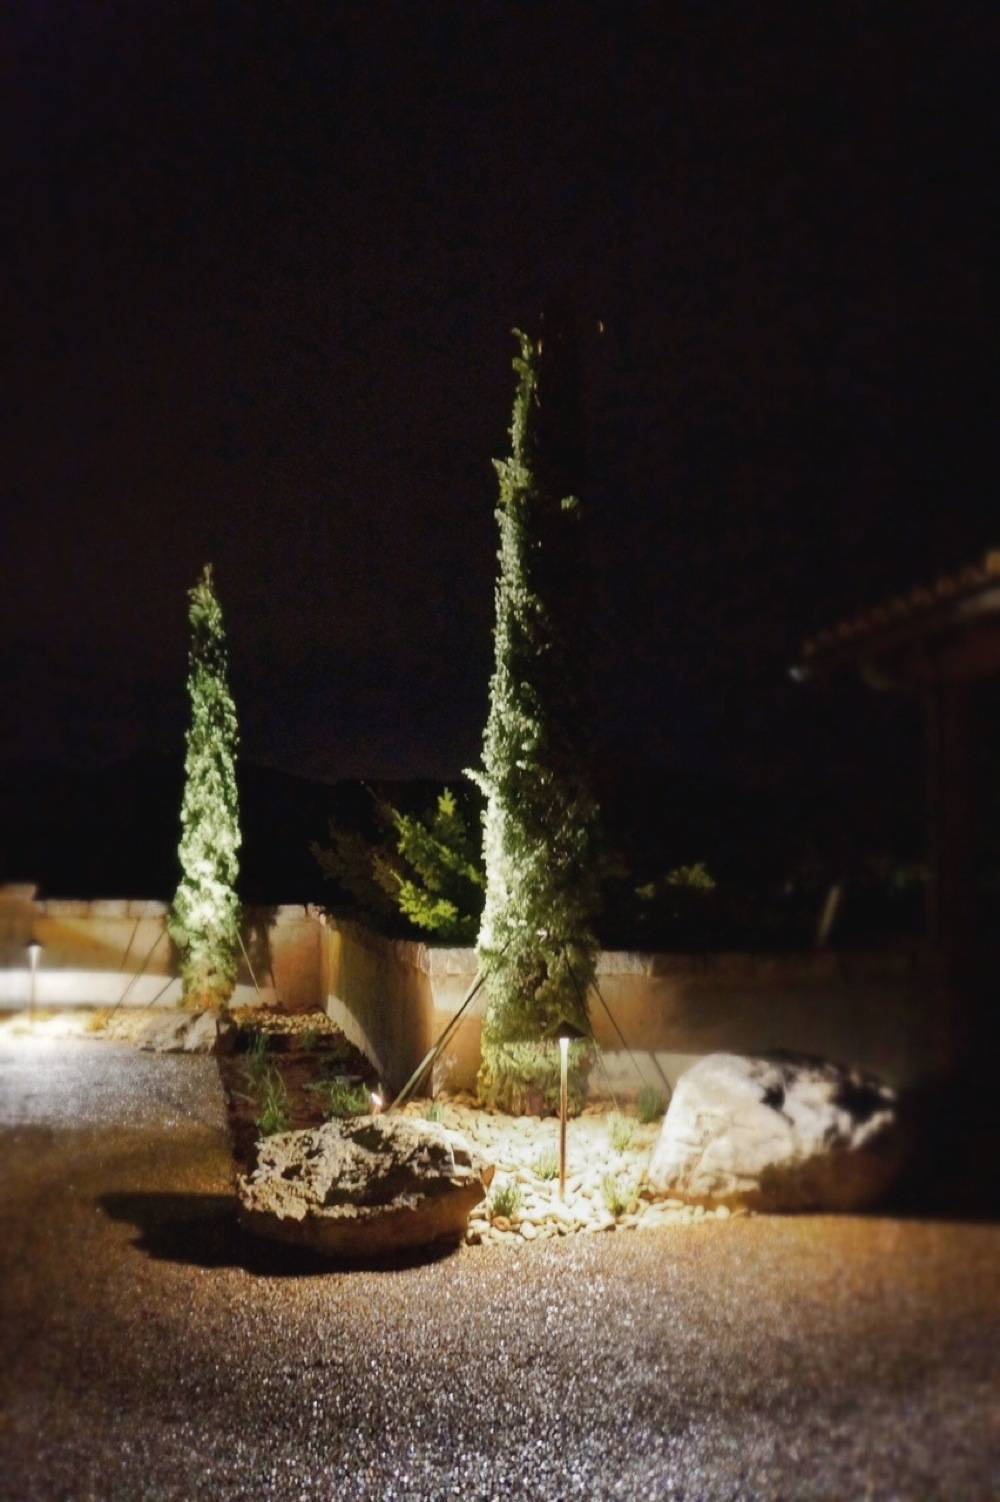 La Bastide night pic.JPG